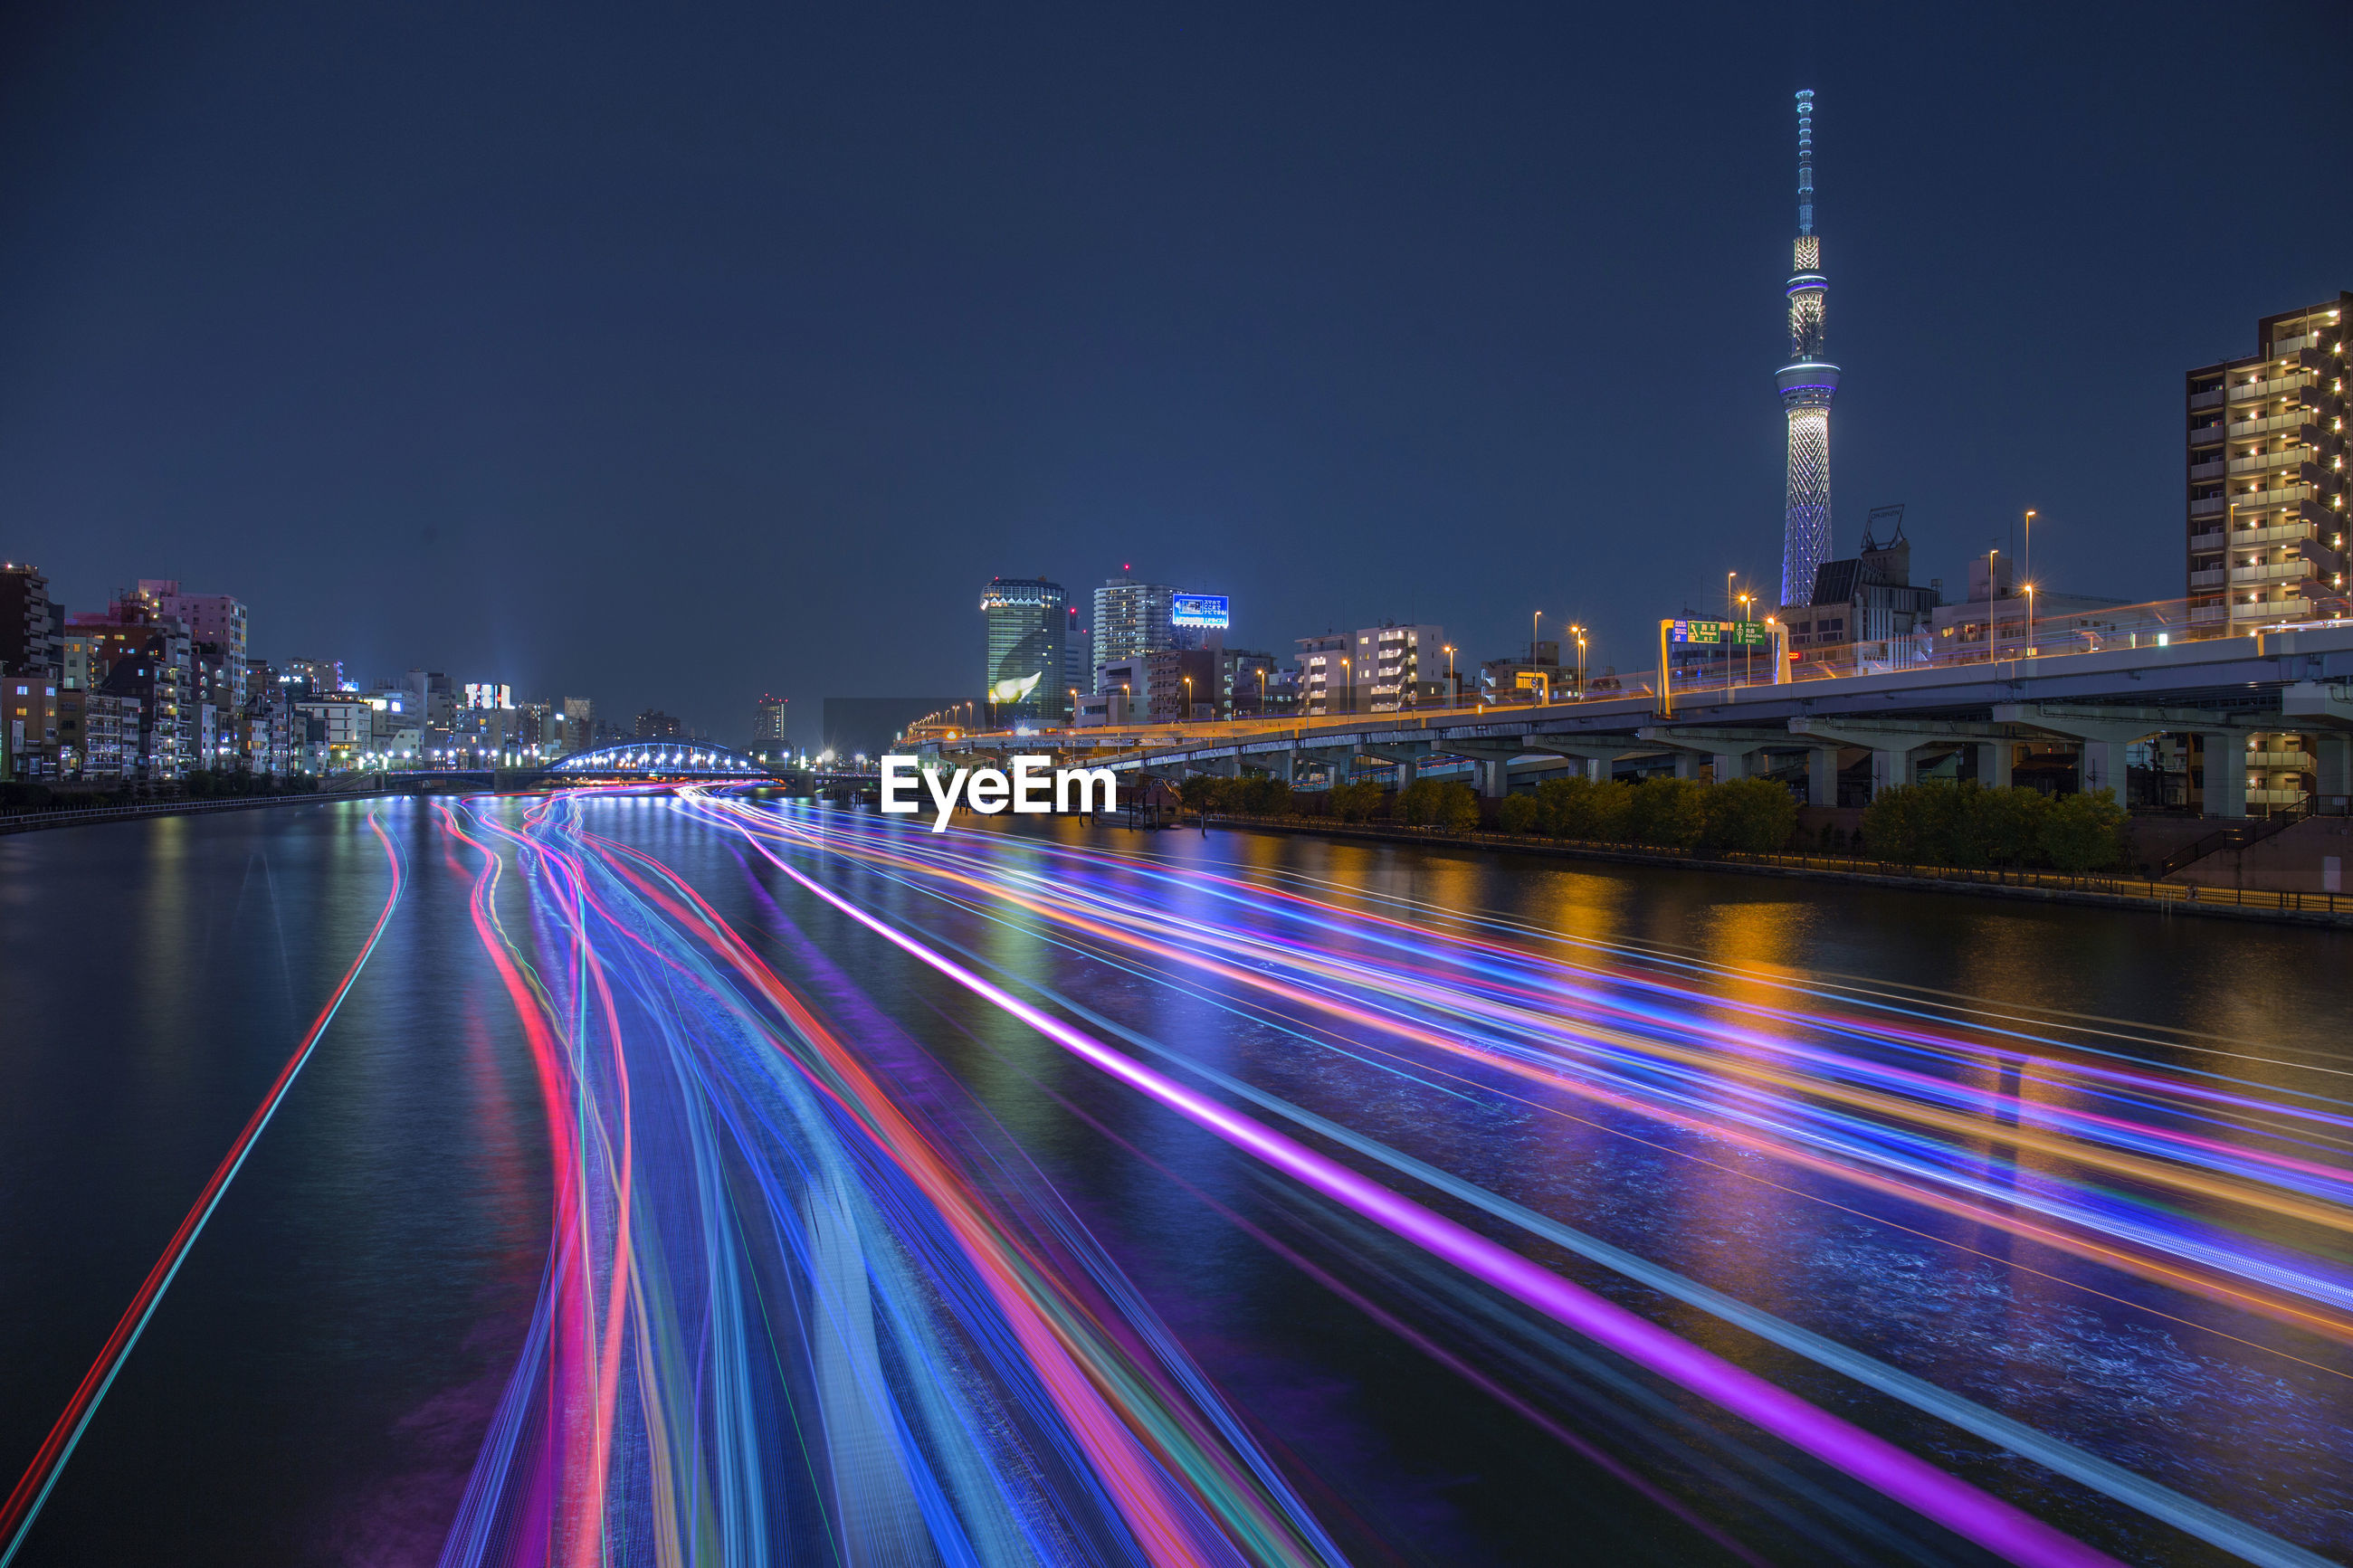 LIGHT TRAILS AMIDST BUILDINGS IN CITY AT NIGHT